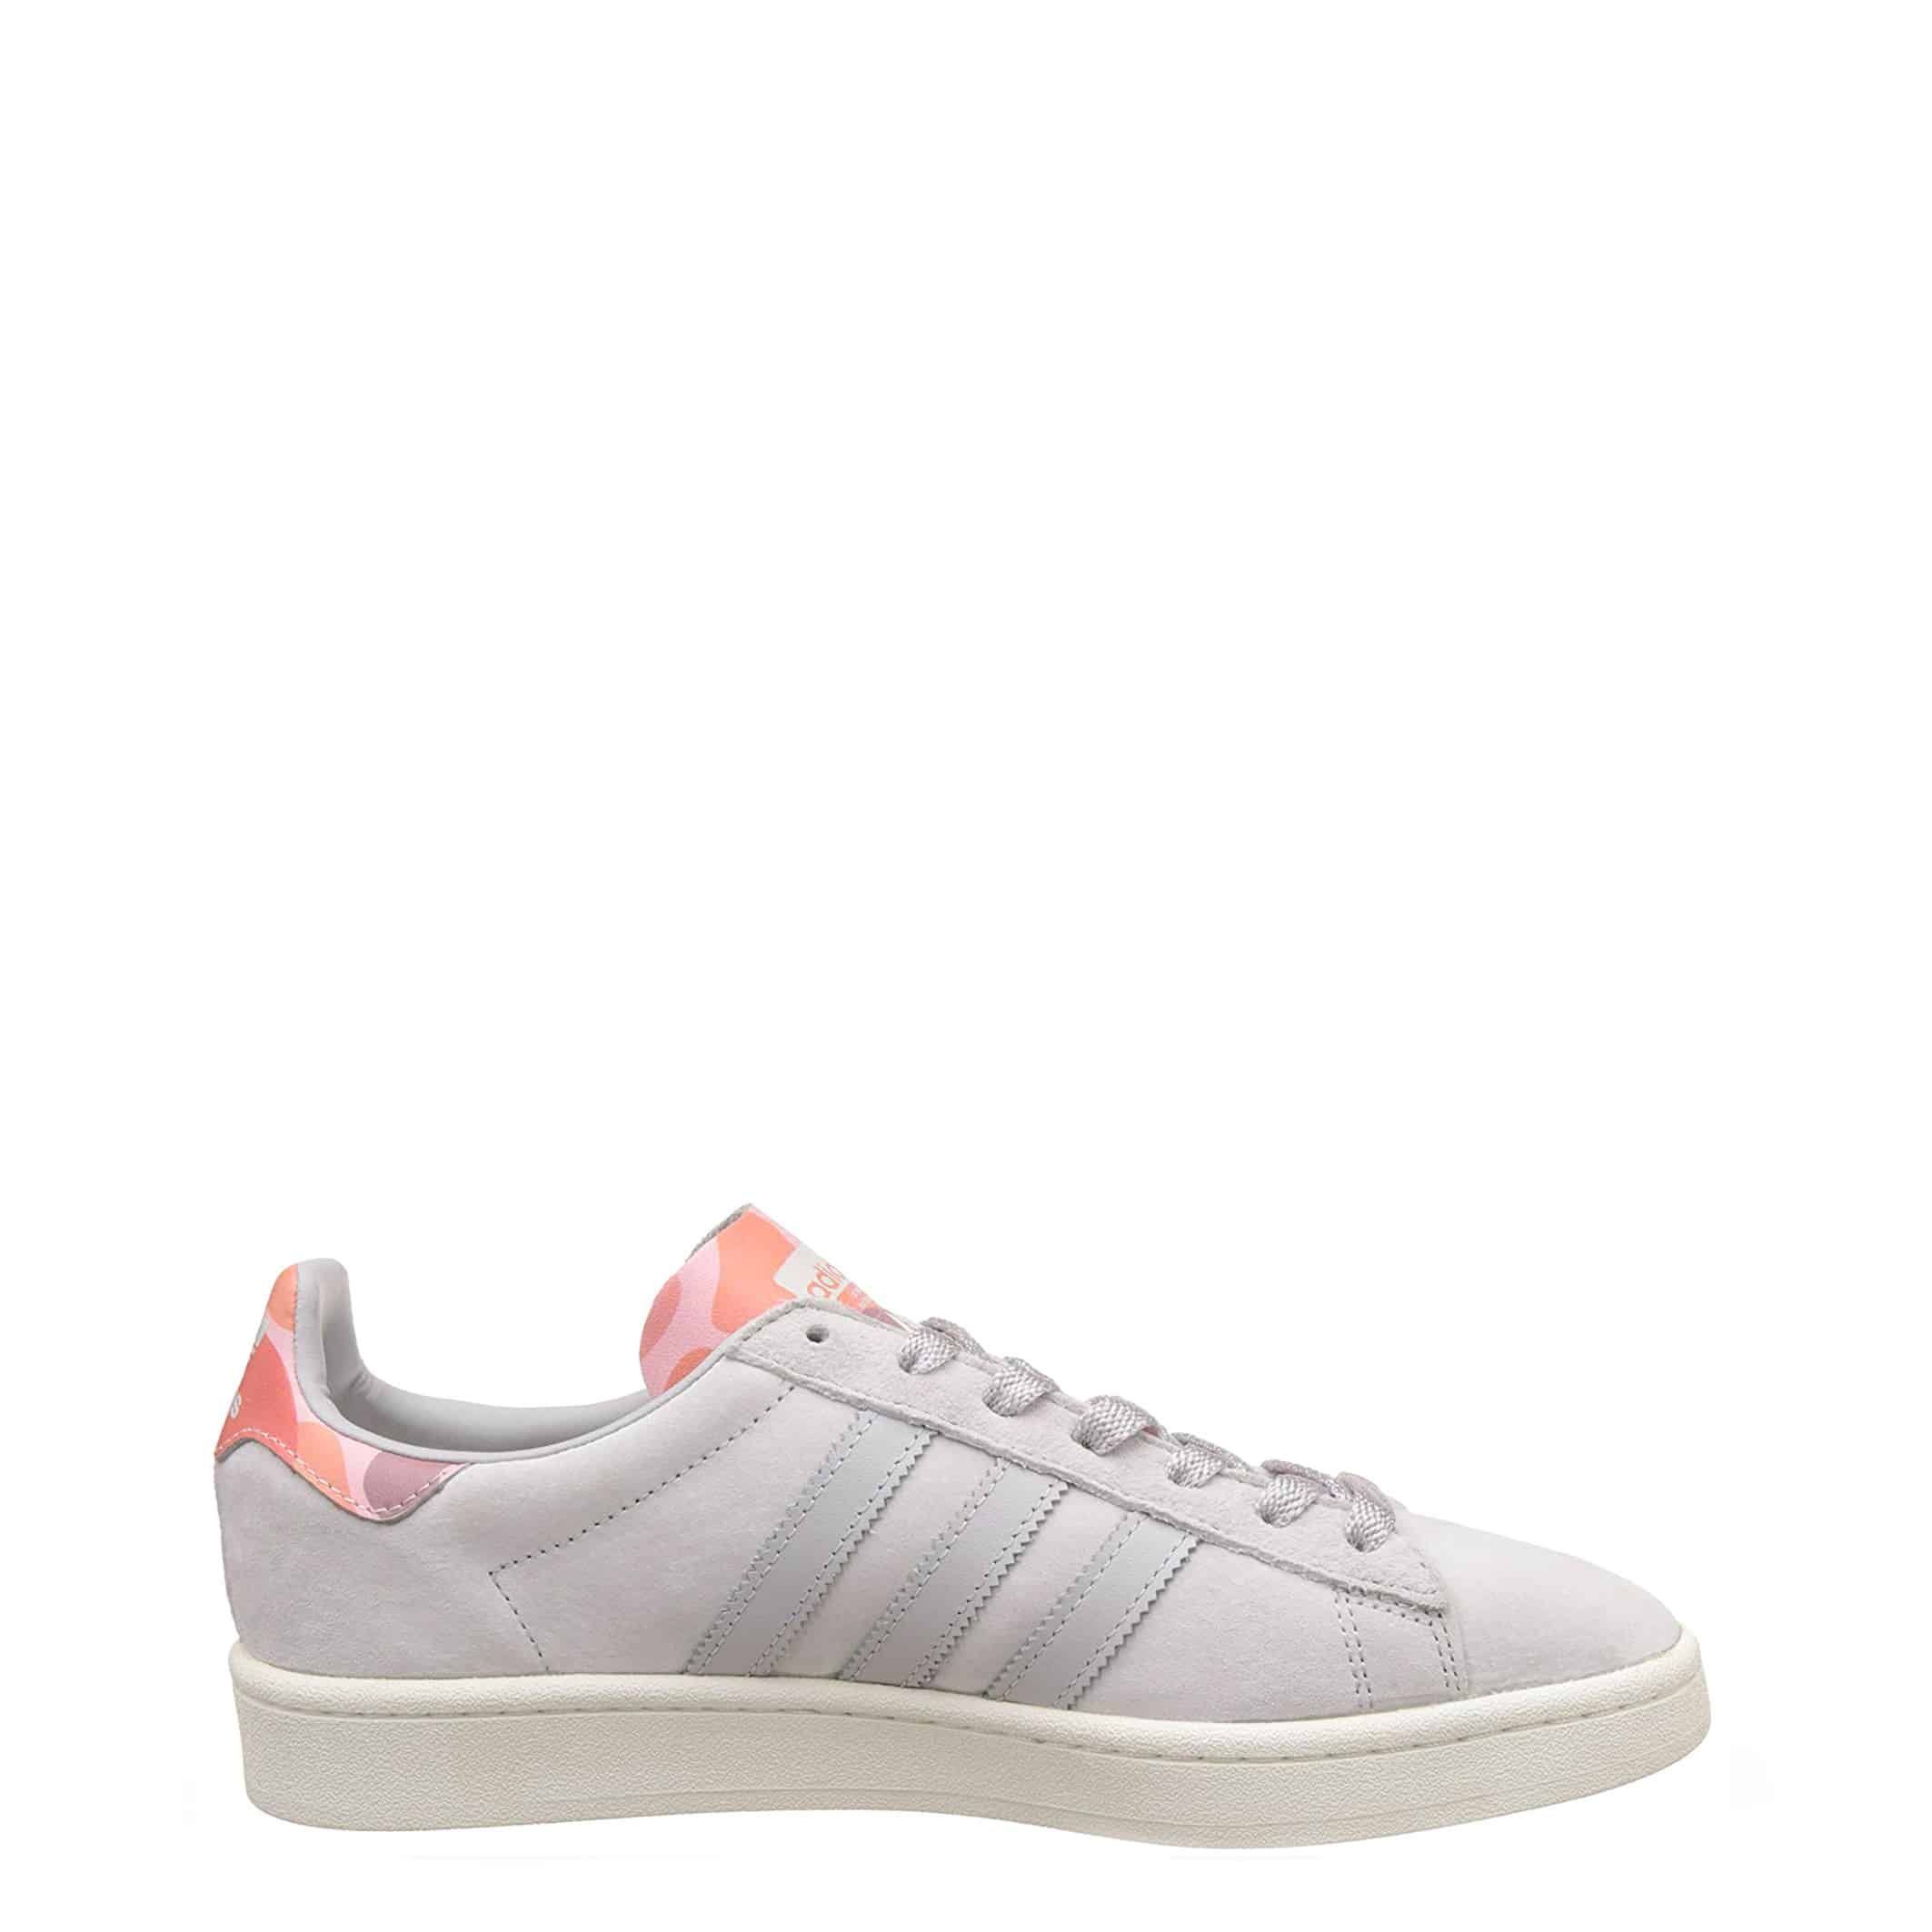 Adidas – ADULTS_CAMPUS – Bianco